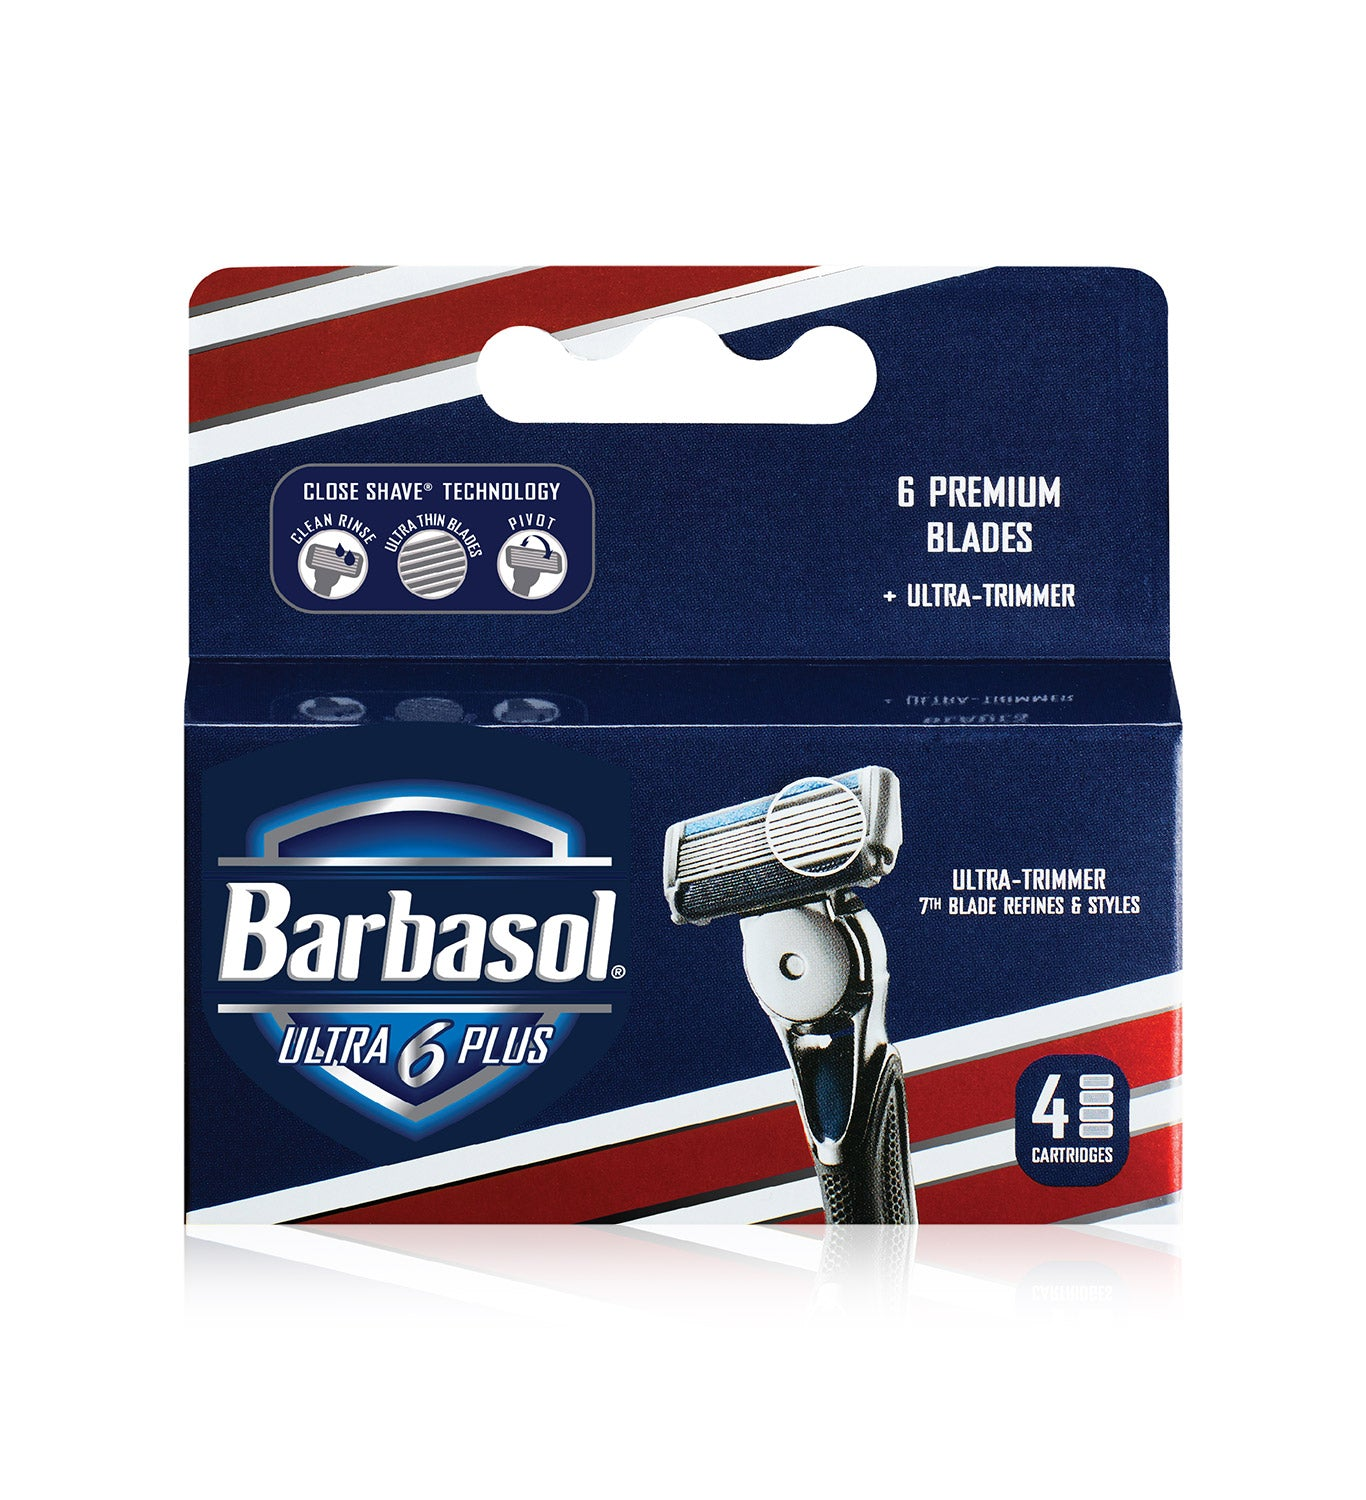 Barbasol Ultra 6 Plus Razor Blade Cartridge Refill Pack,  4 Count